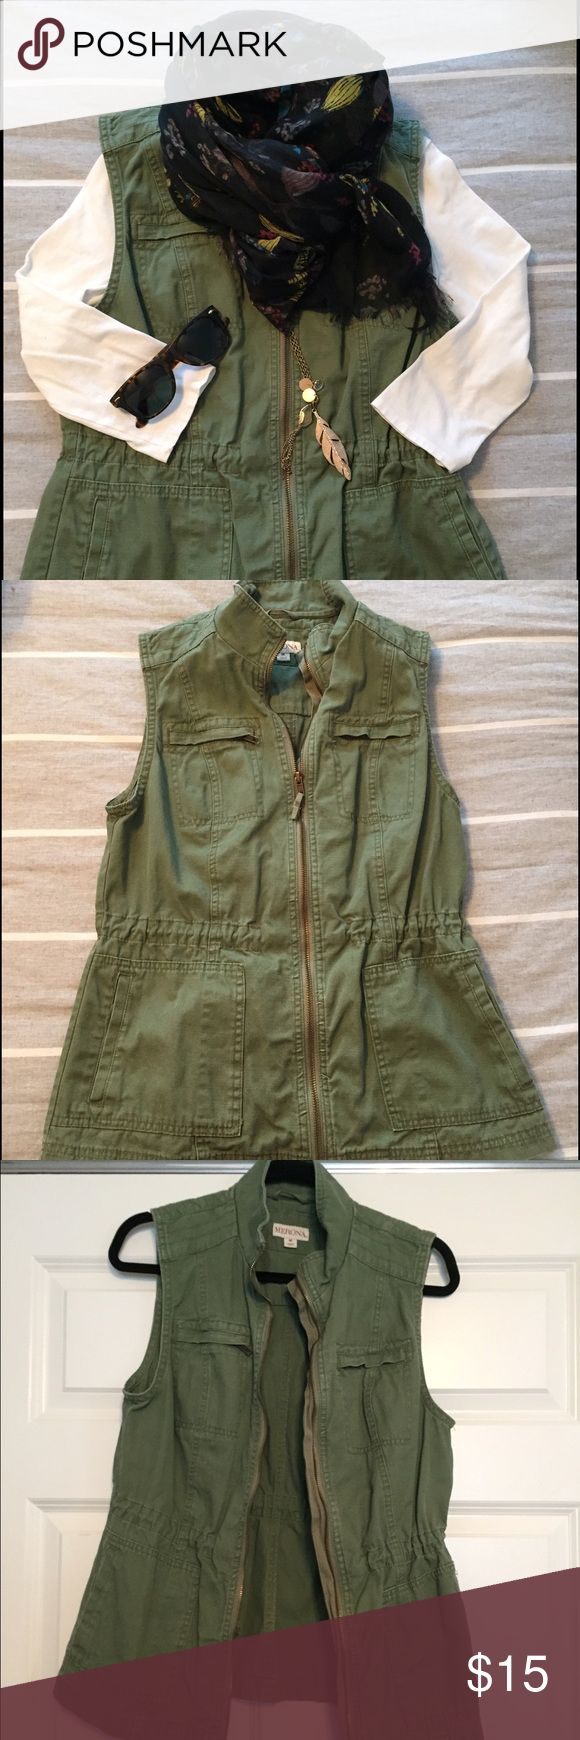 Olive Green Merona Vest Like new olive green merona khaki vest. Only worn 2's. Comes from a smoke/pet free home. Purchase at Target last year. Draw string waist. Merona Jackets & Coats Vests